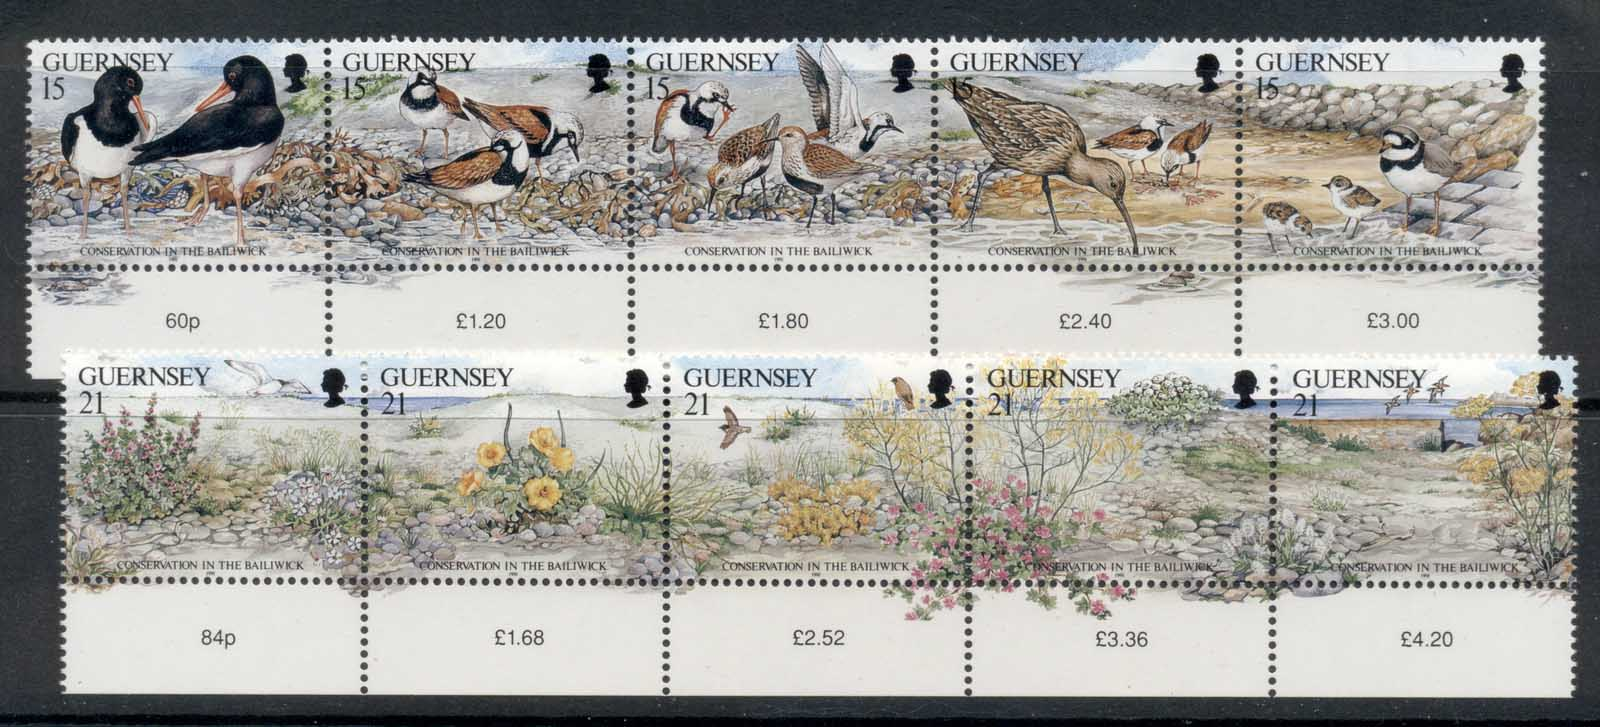 Guernsey 1991 Birds & Plants MUH